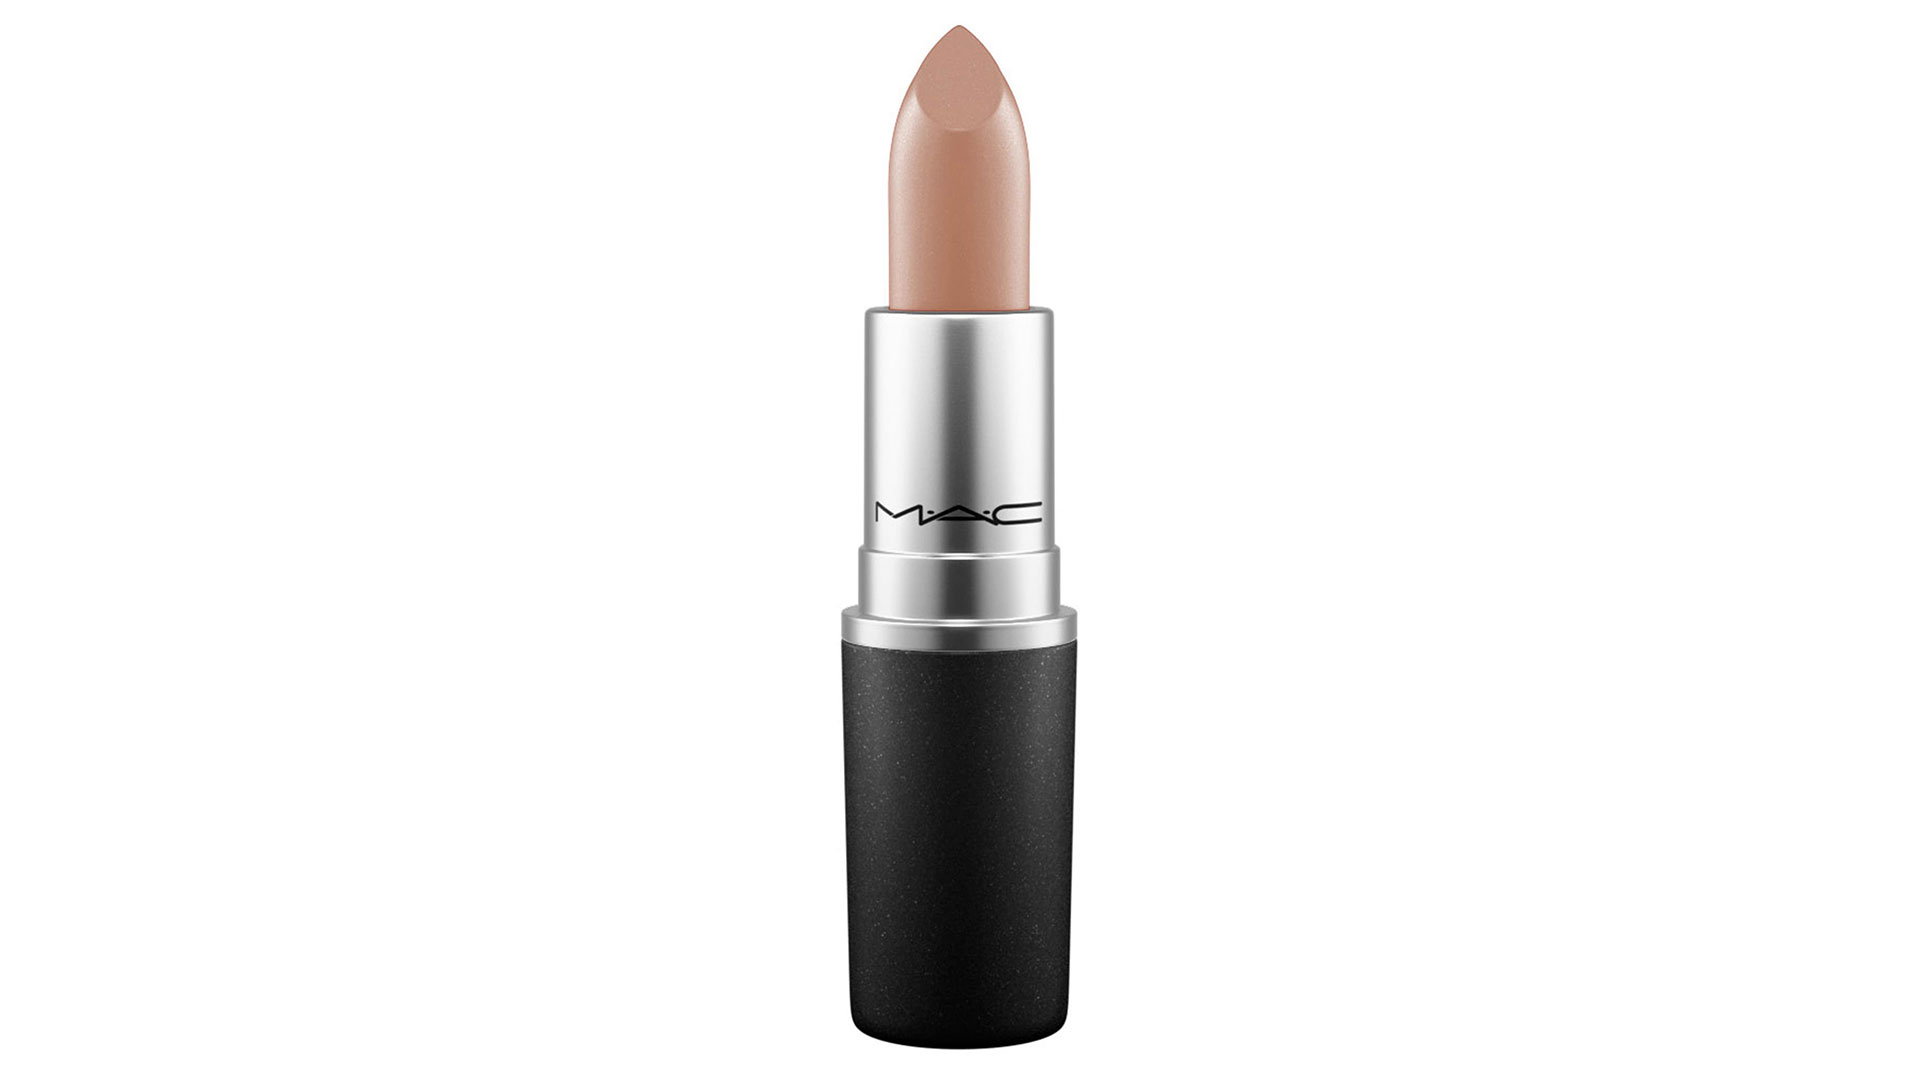 MAC's Nude Lipstick in Fresh Brew